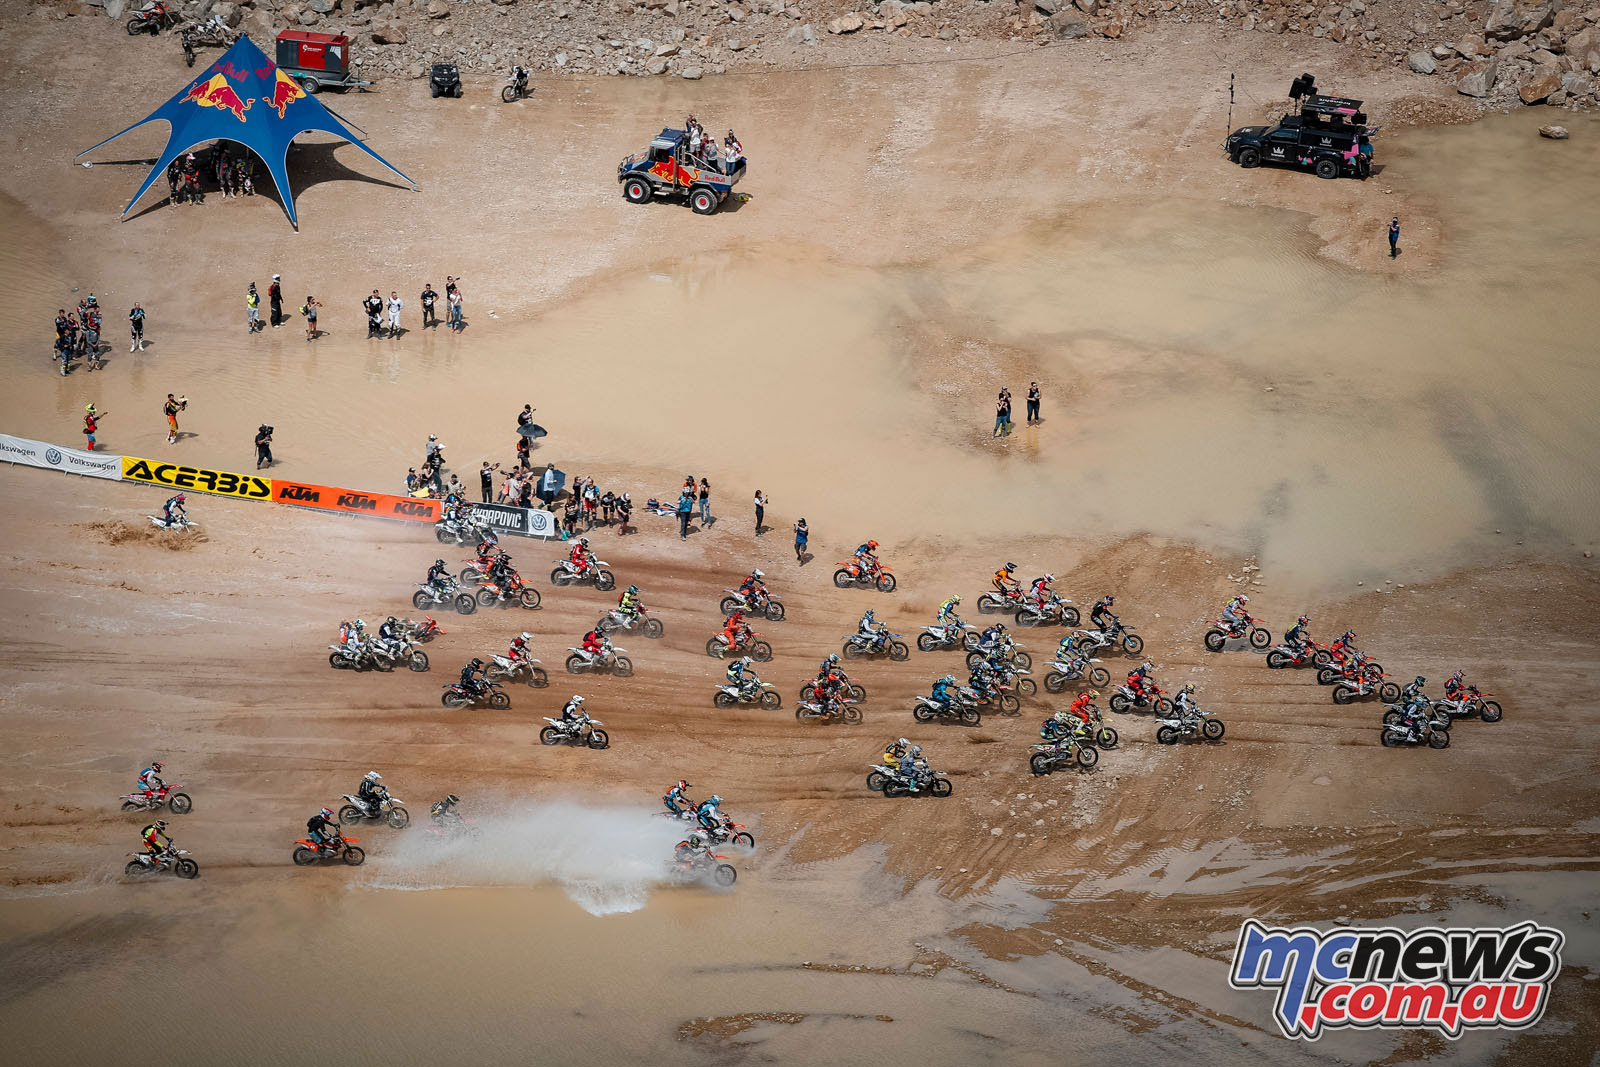 WESS Erzbergrodeo Hare Scramble Rnd Start